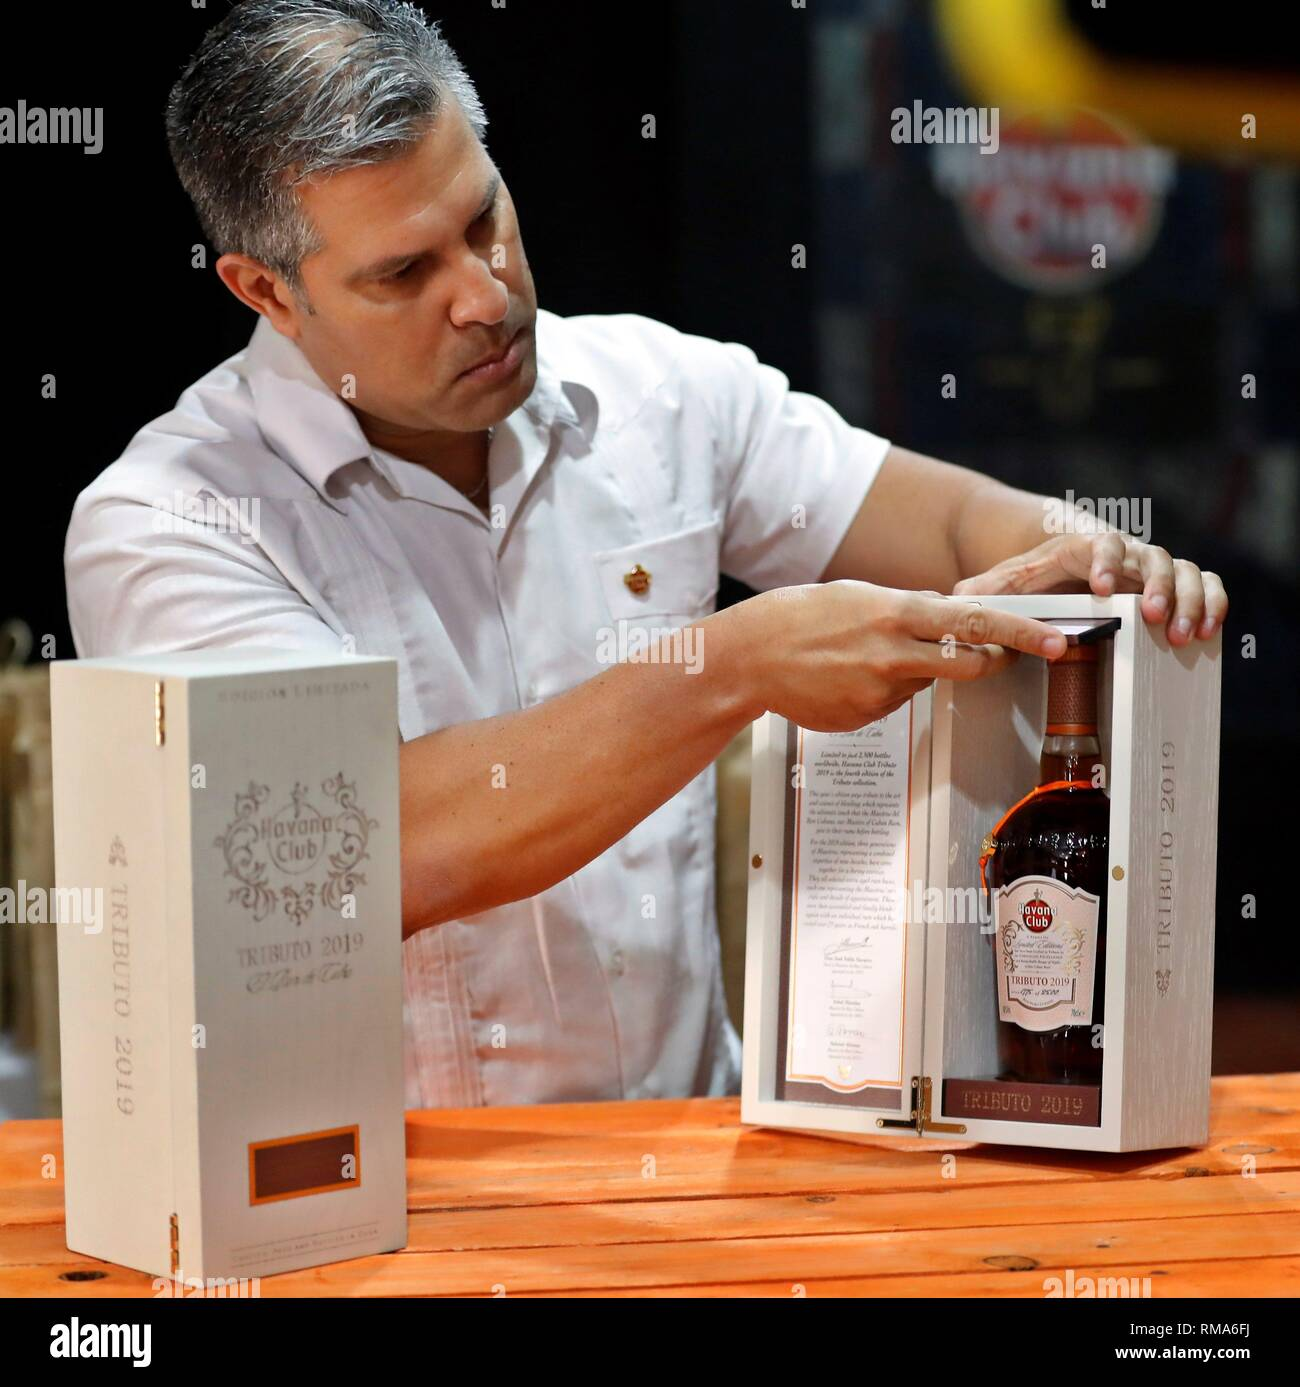 Havana, Cuba. 14th Feb, 2019. A barman opens a box of 'Tributo 2019', one of the luxury rums of Cuban rum company Havana Club, in Havana, Cuba, 14 February 2019. The company discarded that the reactivation of the 3rd title of the Helms Burton Act by the US can prejudice their activities. Credit: Ernesto Mastrascusa/EFE/Alamy Live News - Stock Image